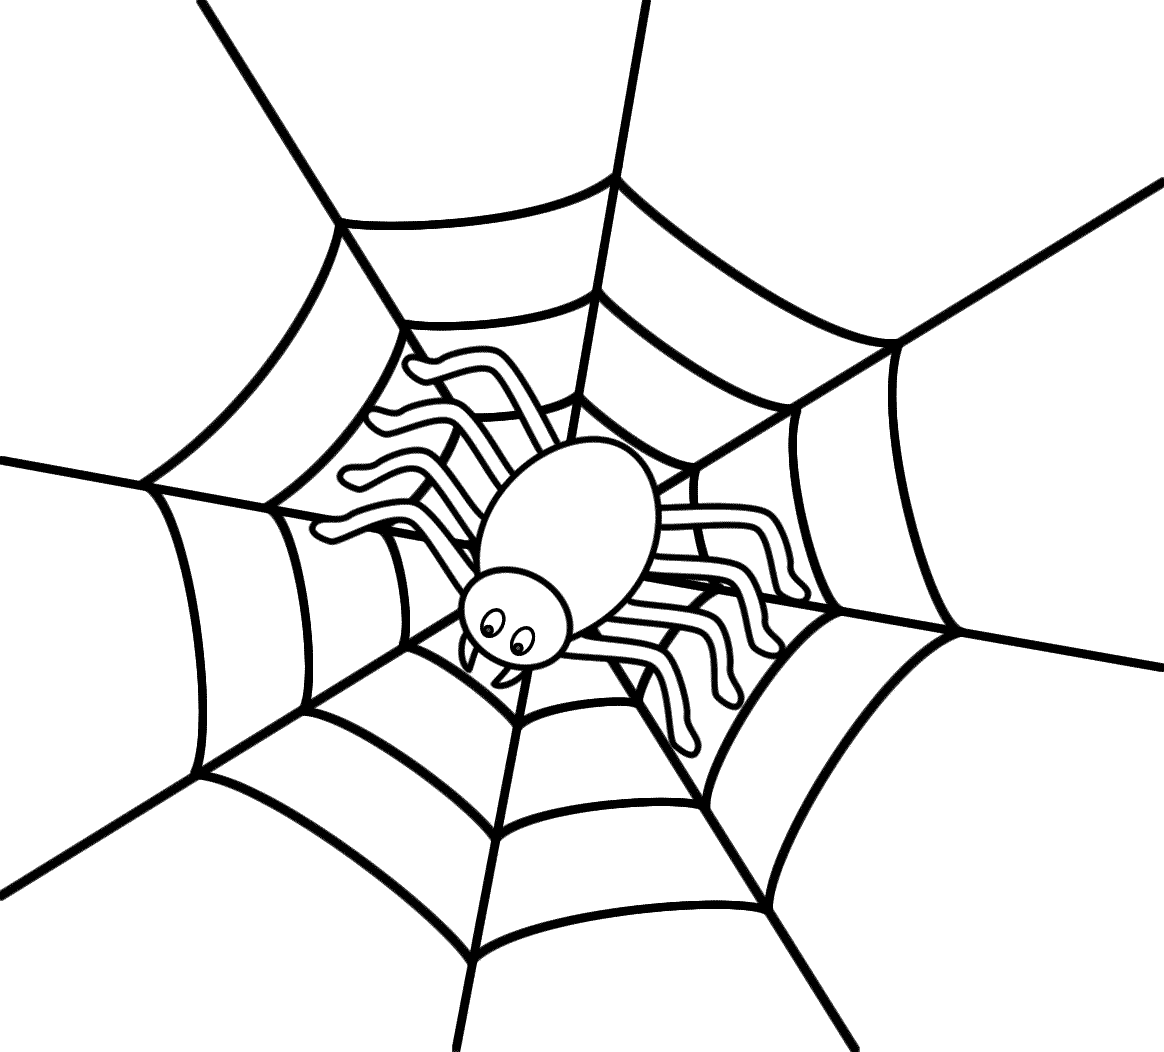 Spider In Web Drawing at GetDrawings.com | Free for personal use ...